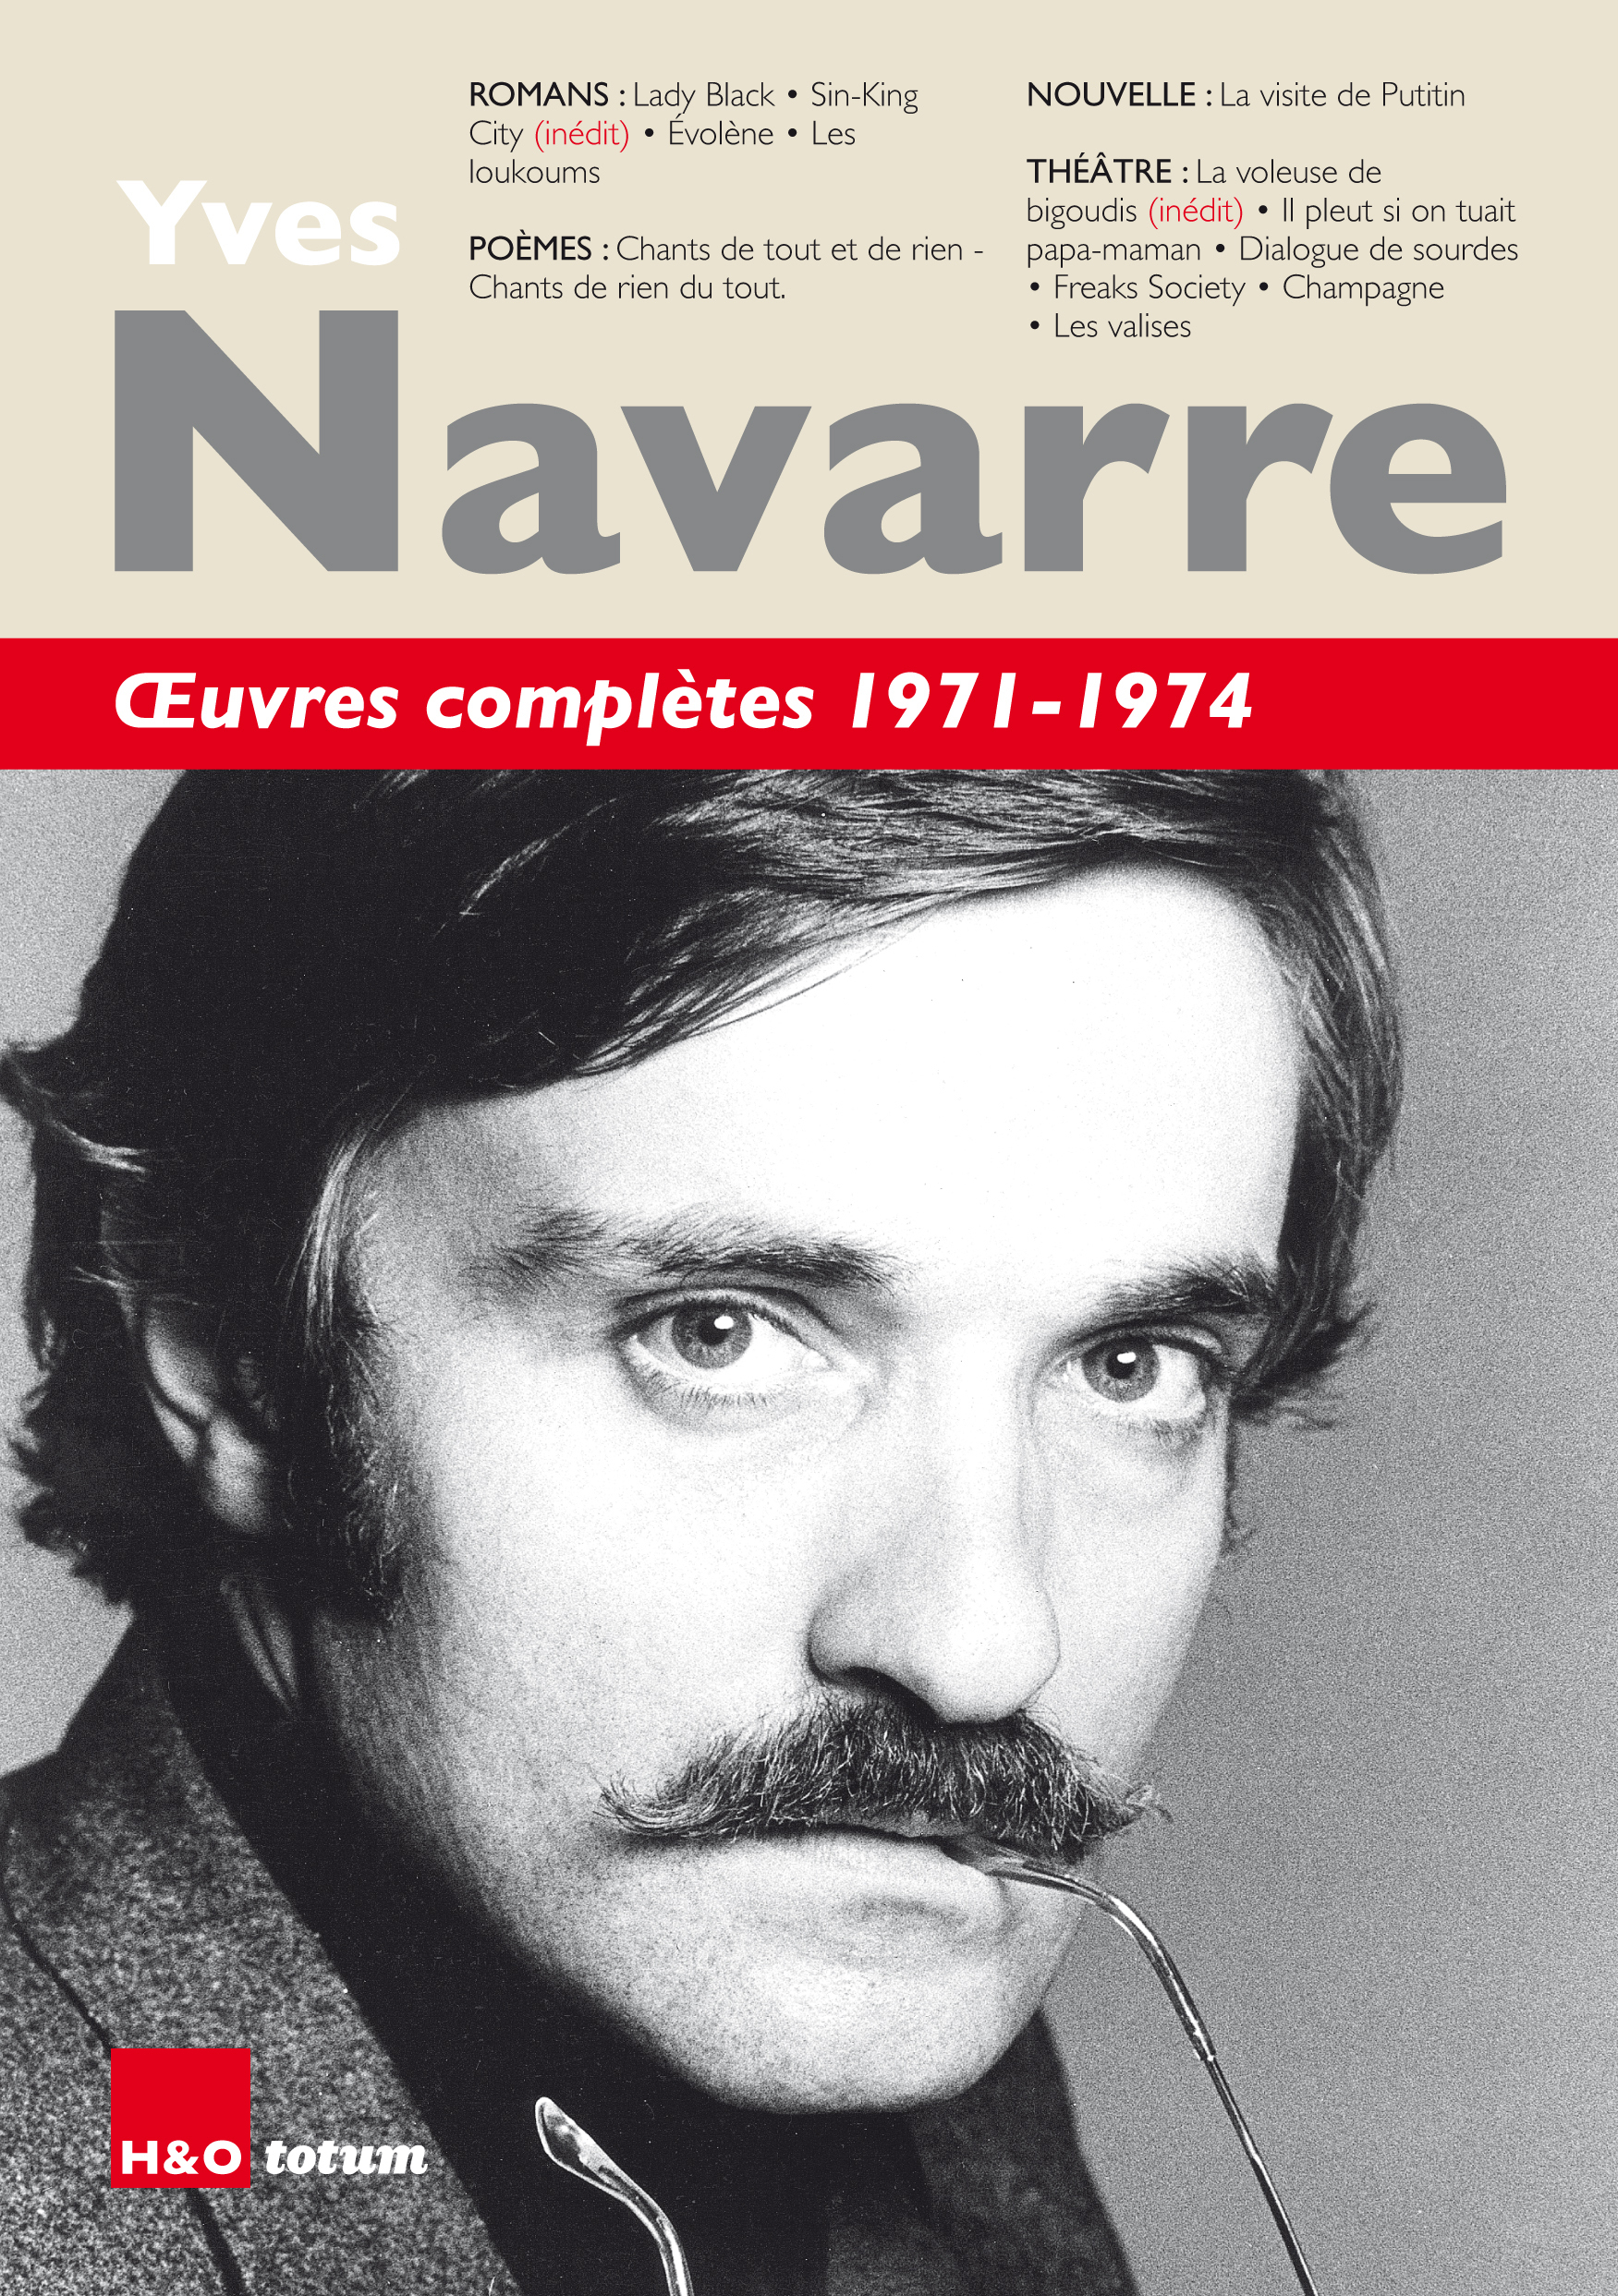 OEUVRES COMPLETES 1971-1974